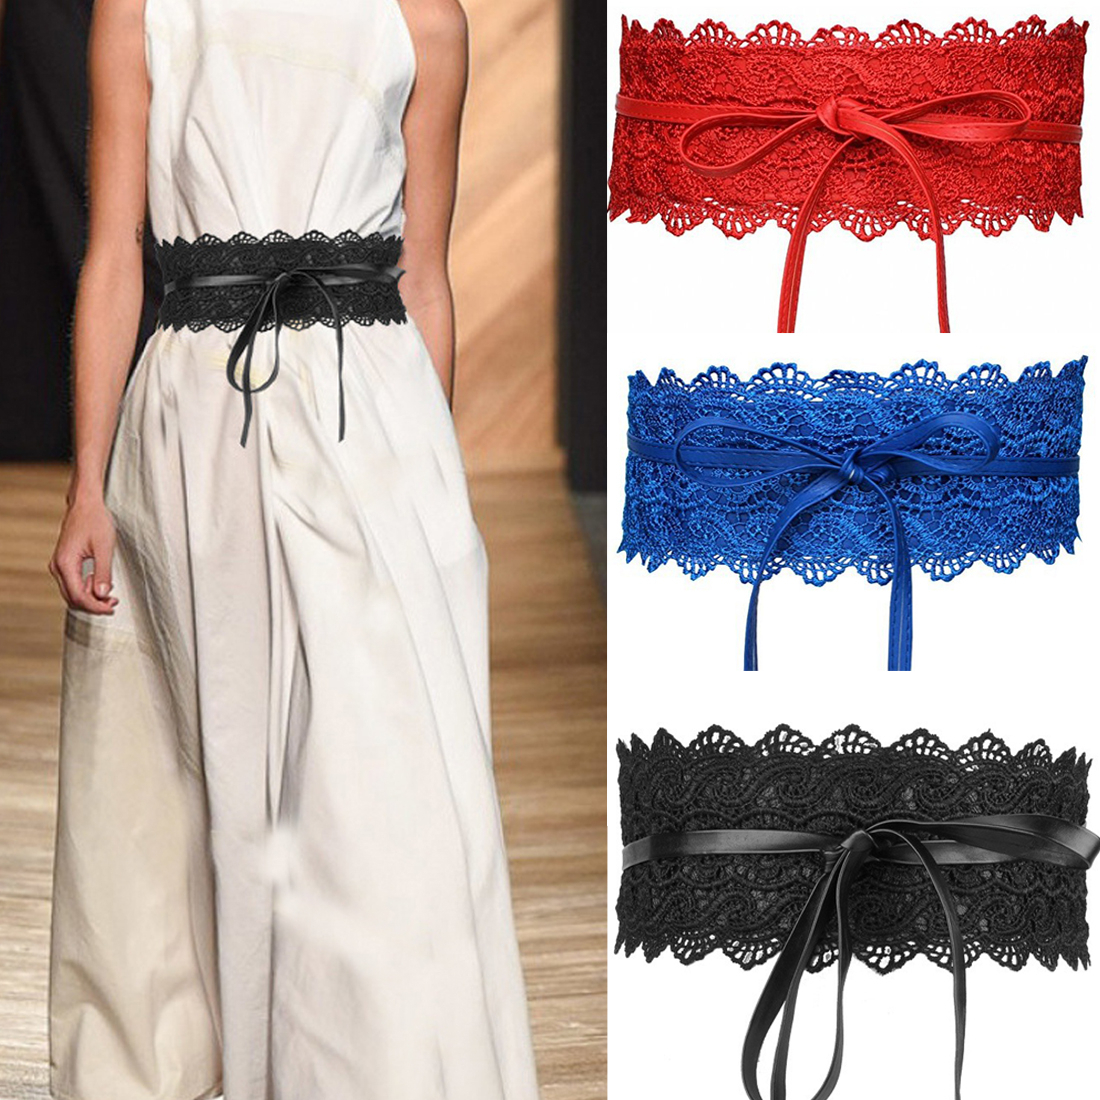 Lace Soft Leather Belts Women Wide Adjustable Tie Waist Wild Belts Multicolor Fashion Accessional For Dress Tops Decoration New